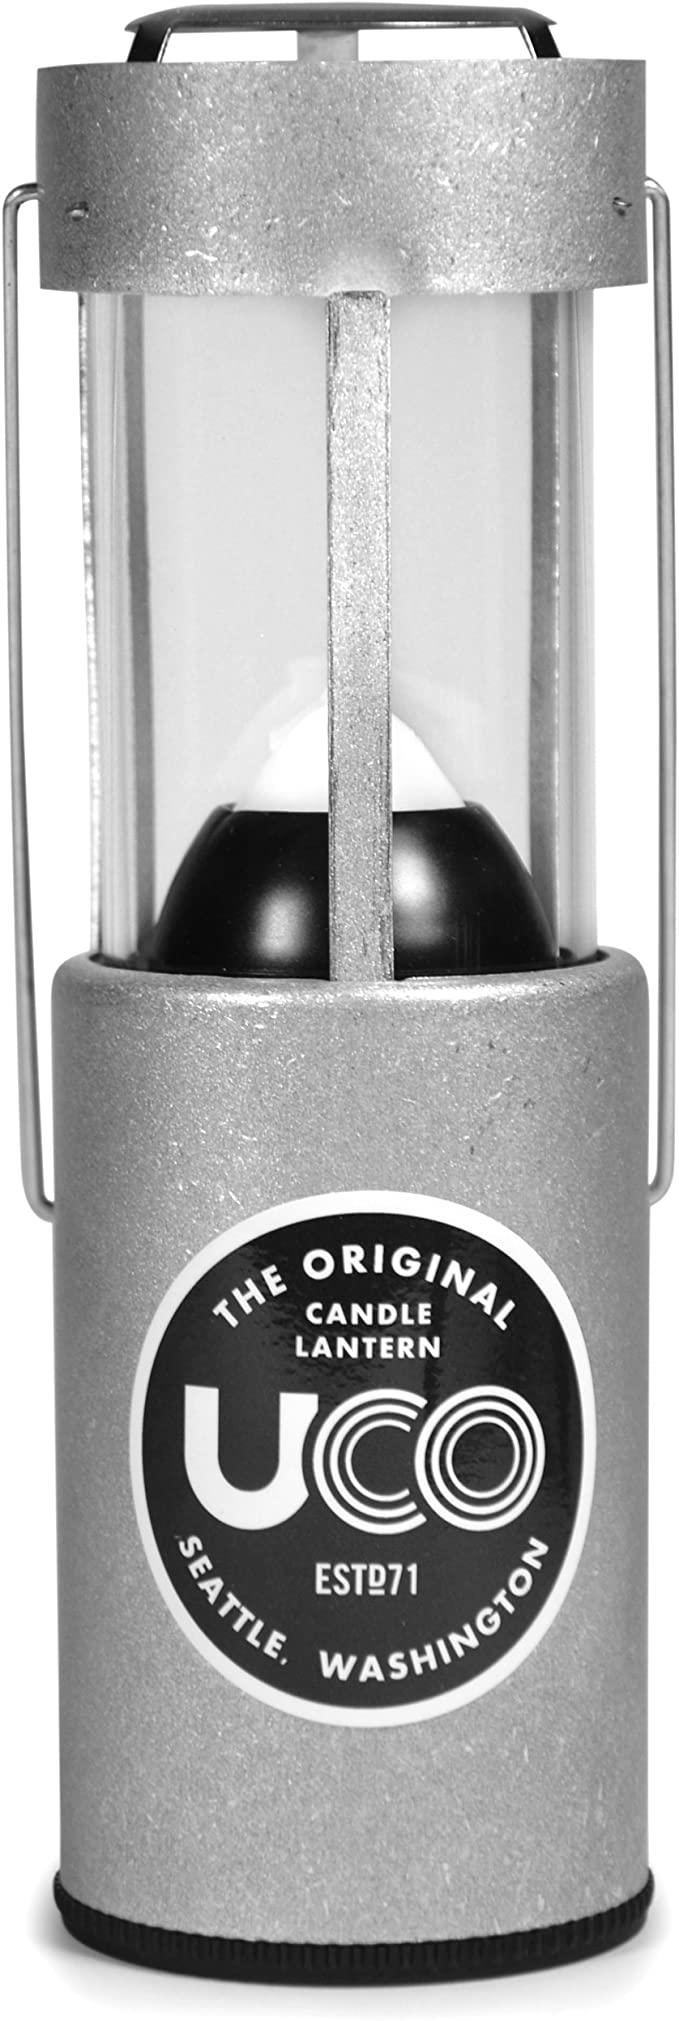 UCO White Candles Candle Lanterns Emergency Preparedness Comfortable Fit for sale online